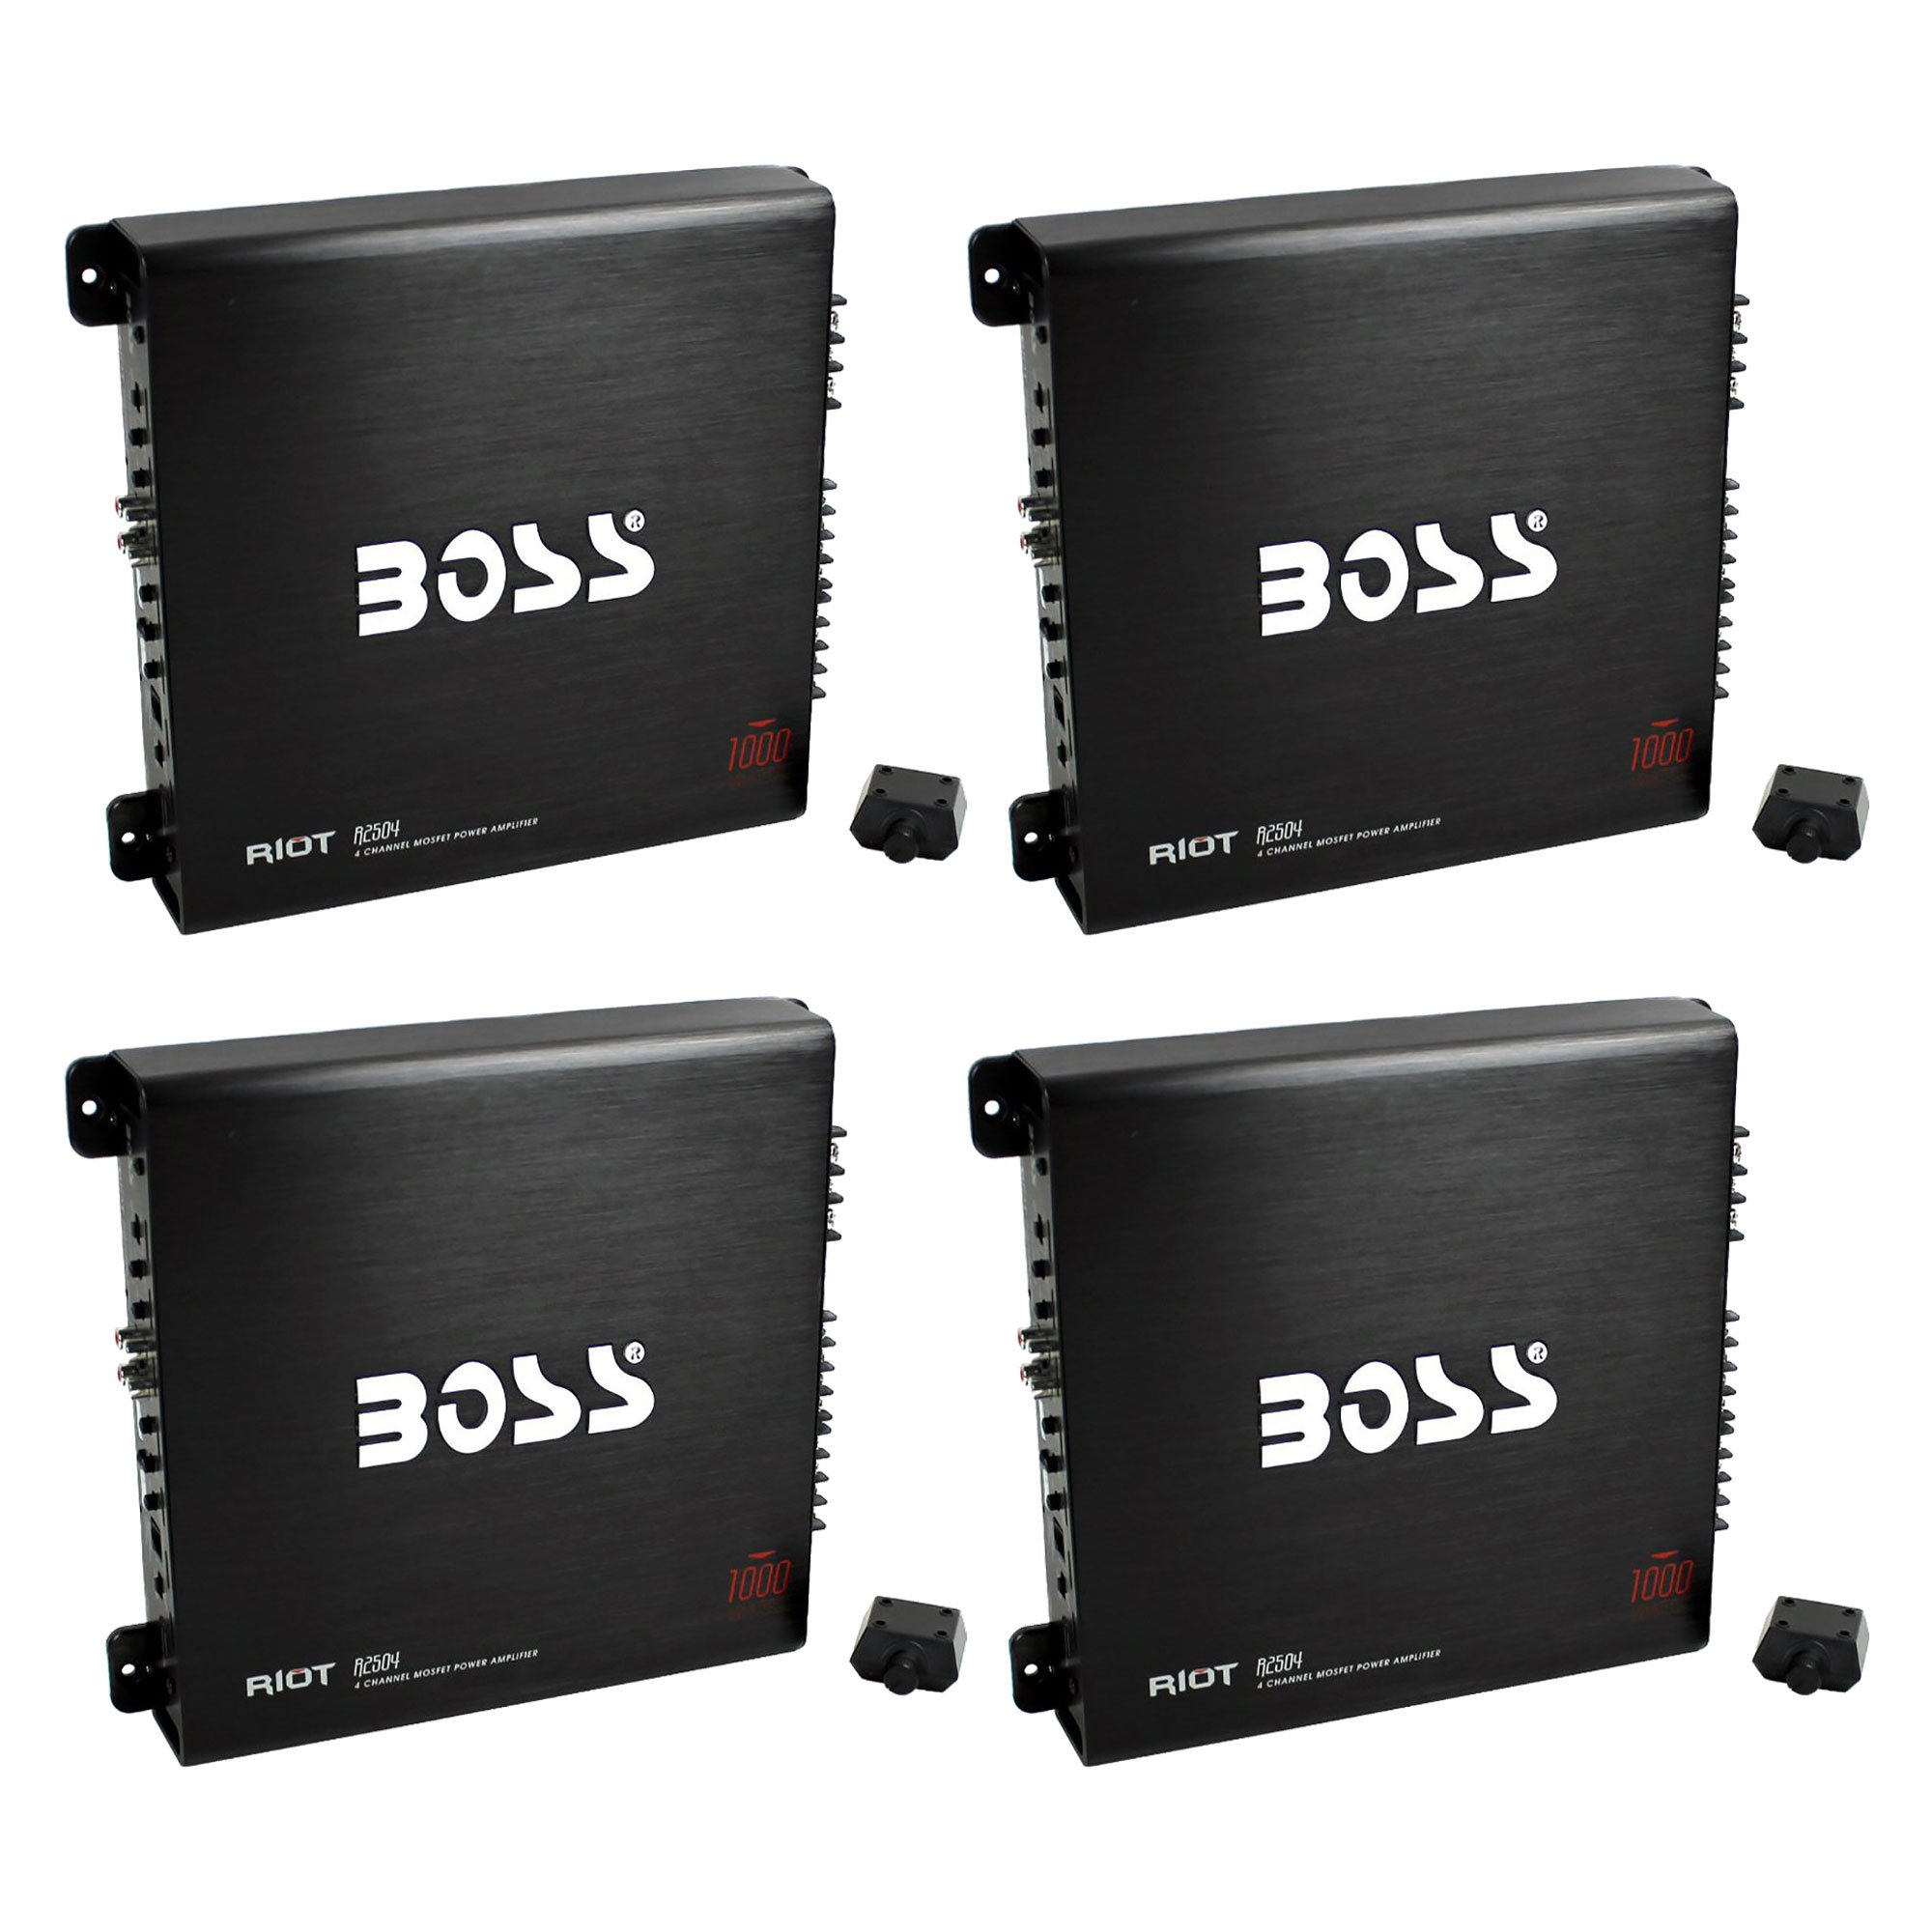 Boss Audio 1000W 4 Channel Car Audio Power Stereo Amplifier w/ Remote (4 Pack)